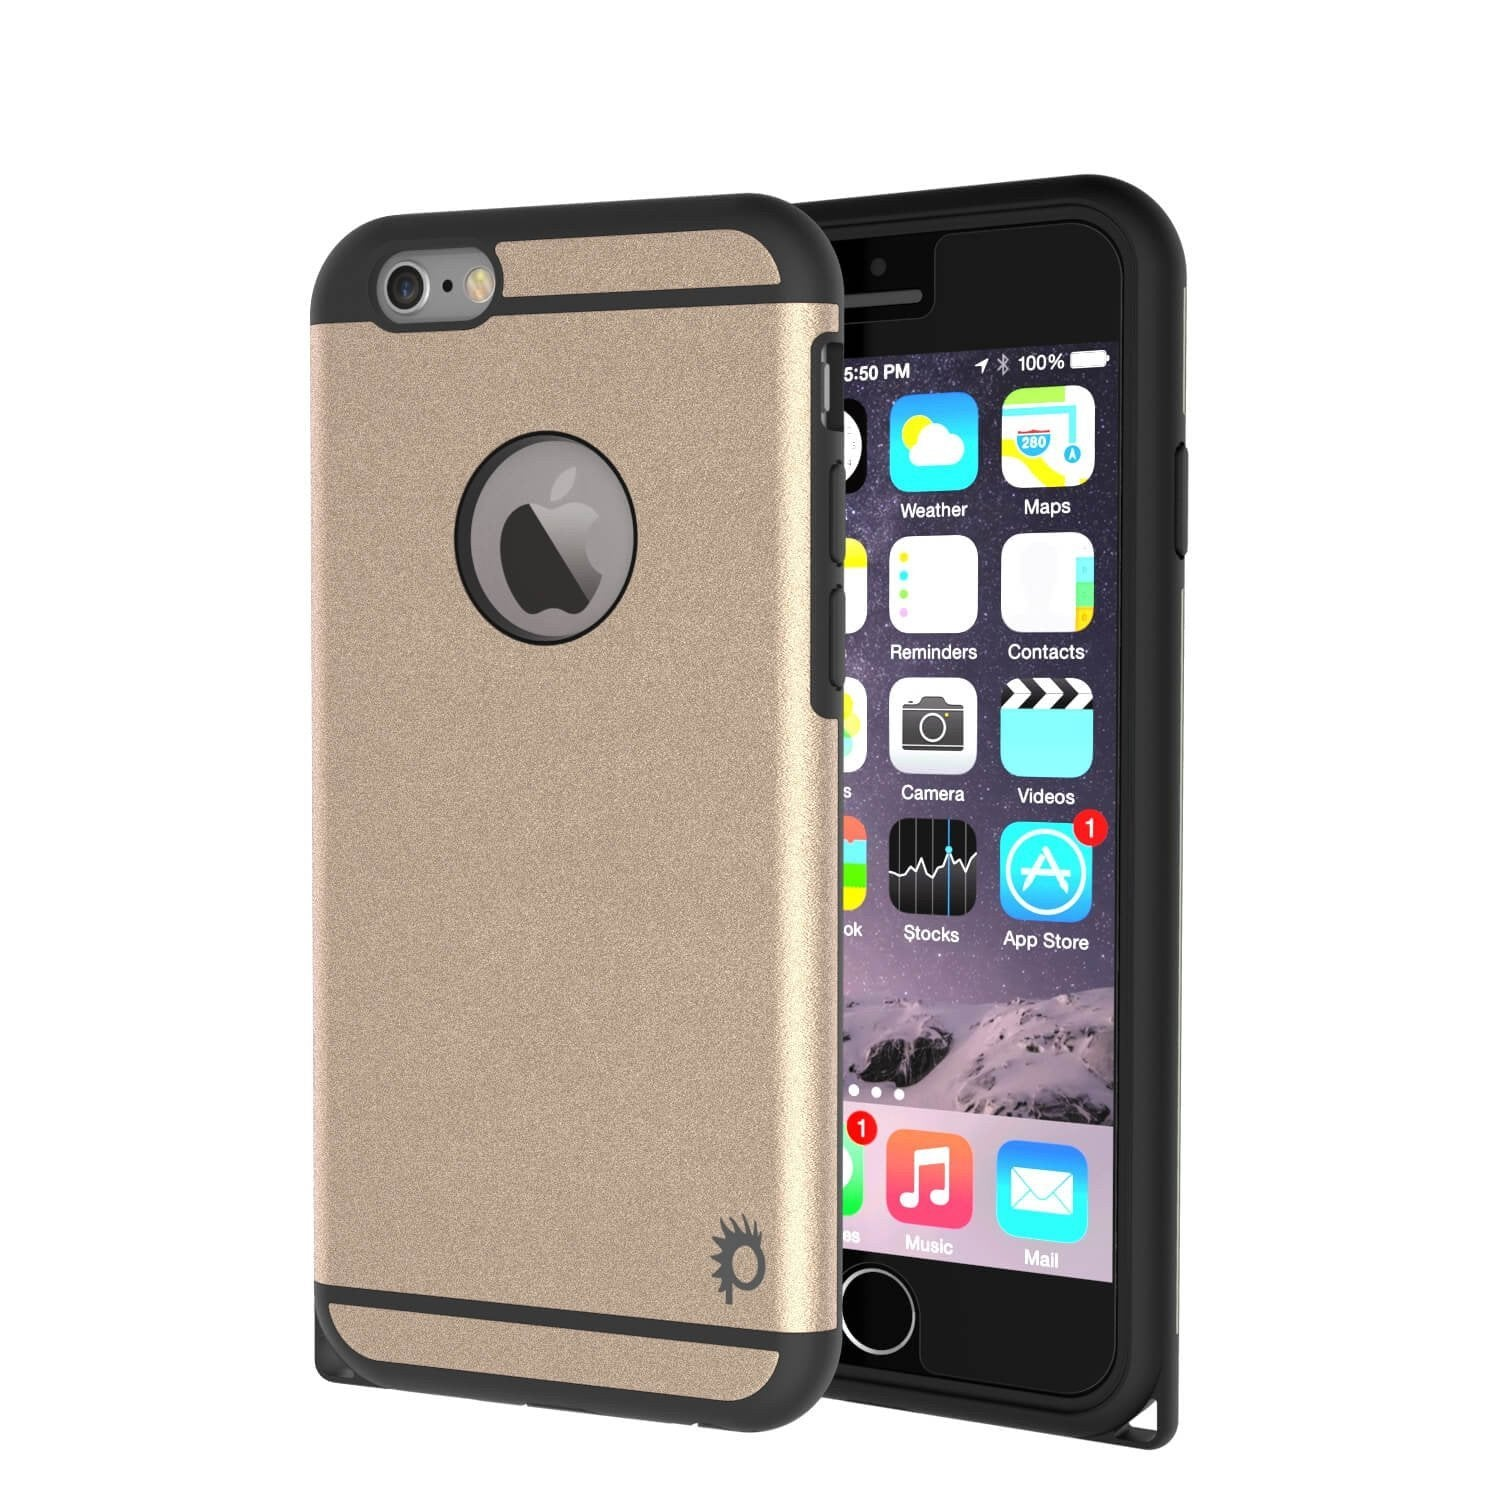 iPhone 5s/5/SE Case PunkCase Galactic Gold Series Slim w/ Tempered Glass | Lifetime Warranty